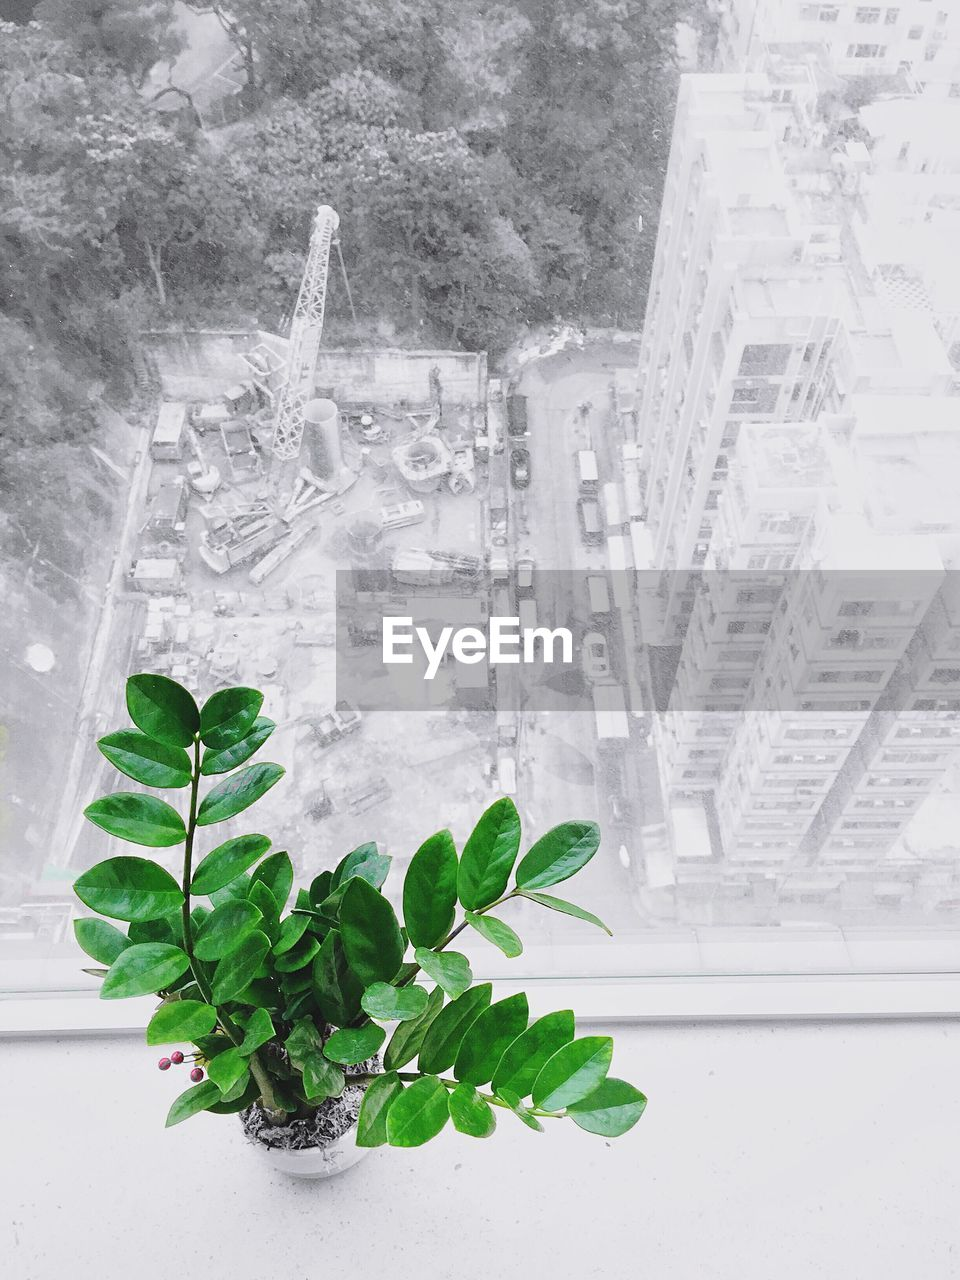 plant, leaf, plant part, nature, no people, green color, architecture, growth, window, day, built structure, indoors, close-up, beauty in nature, potted plant, glass - material, high angle view, white color, houseplant